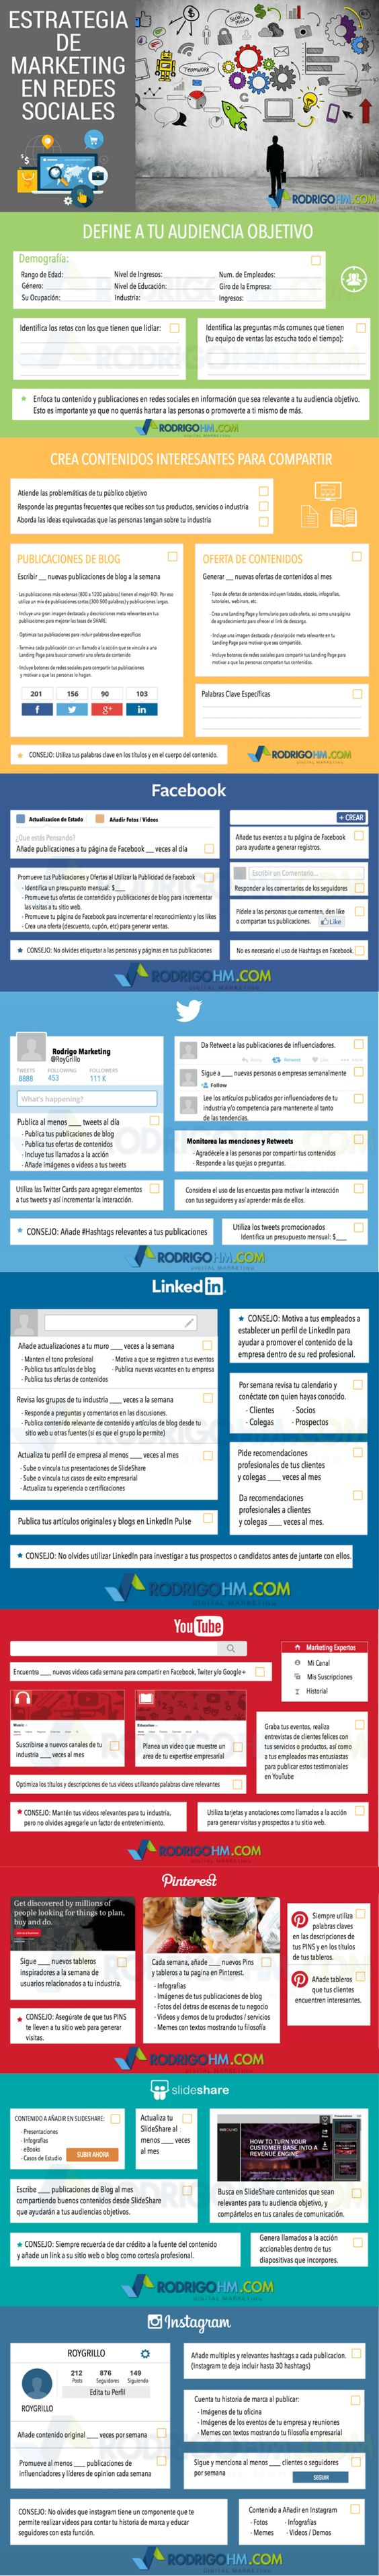 Estrategias de Marketing en Redes Sociales #infografia